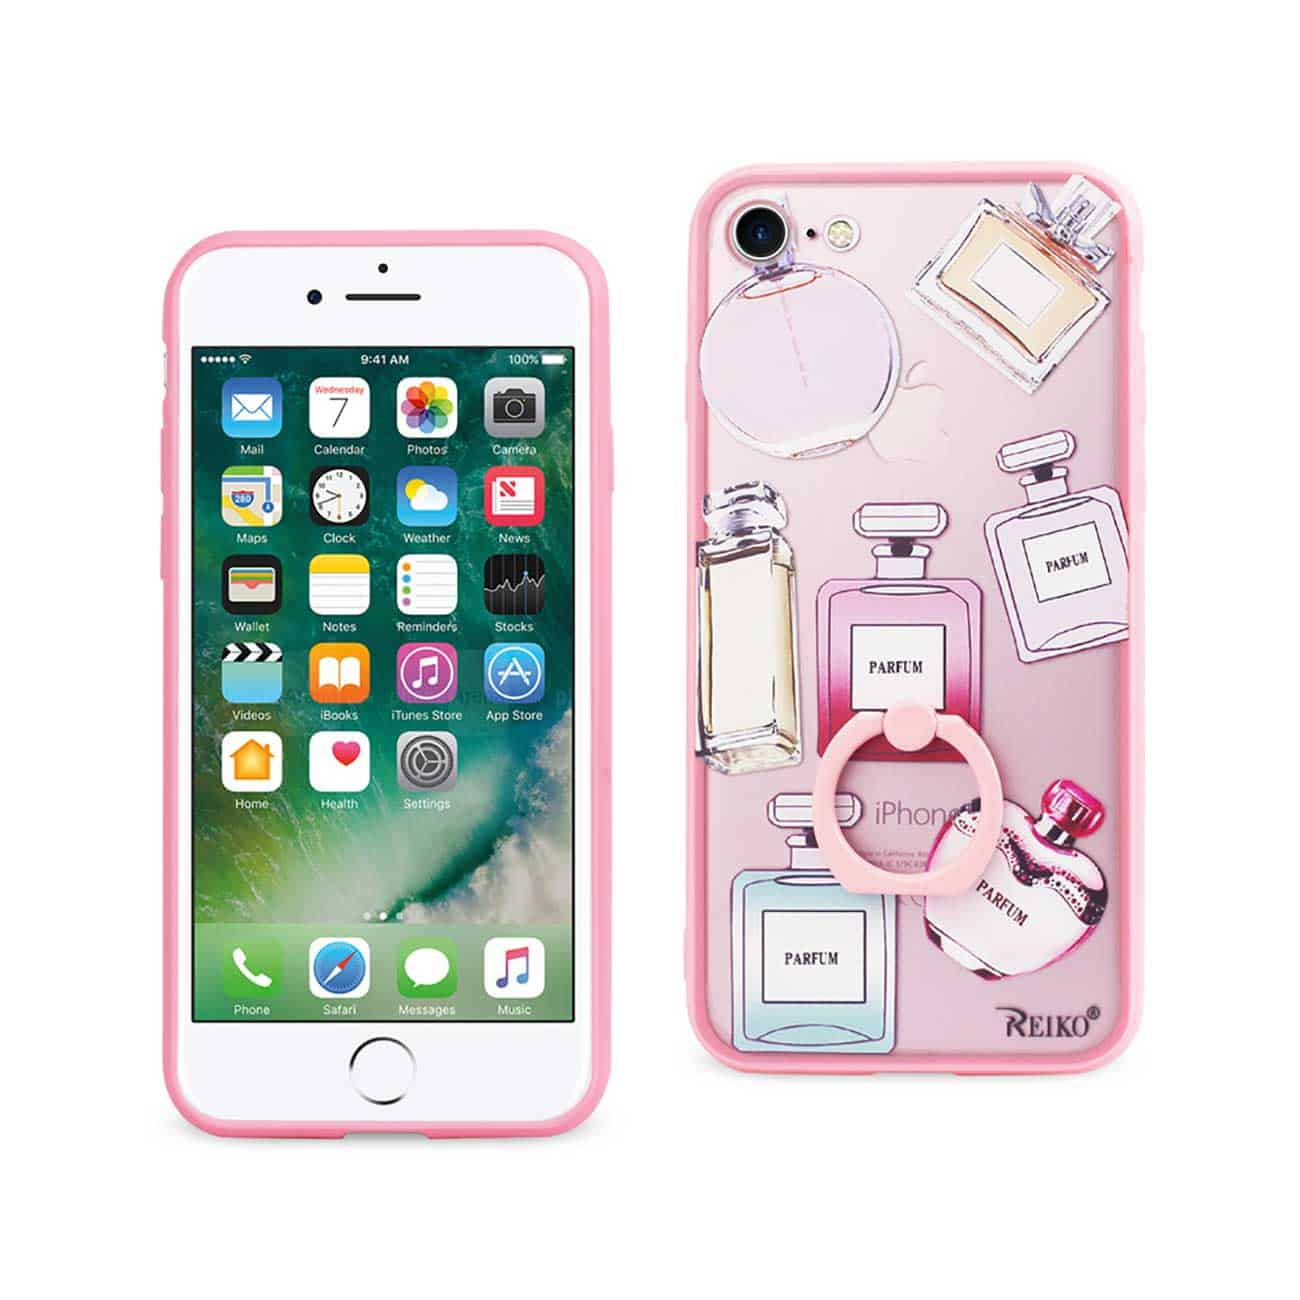 IPHONE 7/ 6/ 6S PERFUME DESIGN CLEAR CASE WITH ROTATING RING STAND HOLDER IN MIX